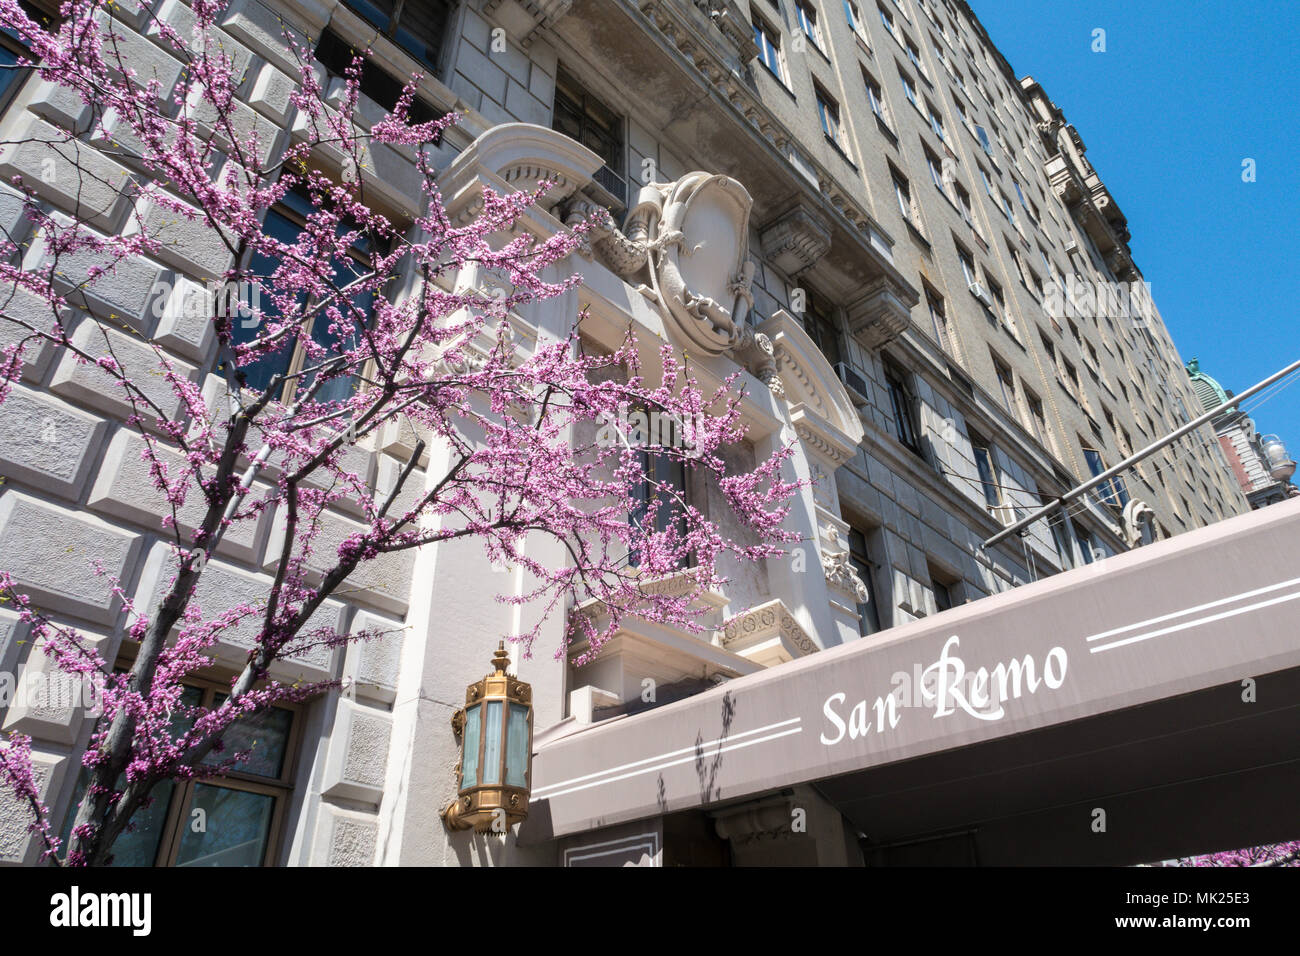 San Remo, 145 Central Park West, NYC - Stock Image